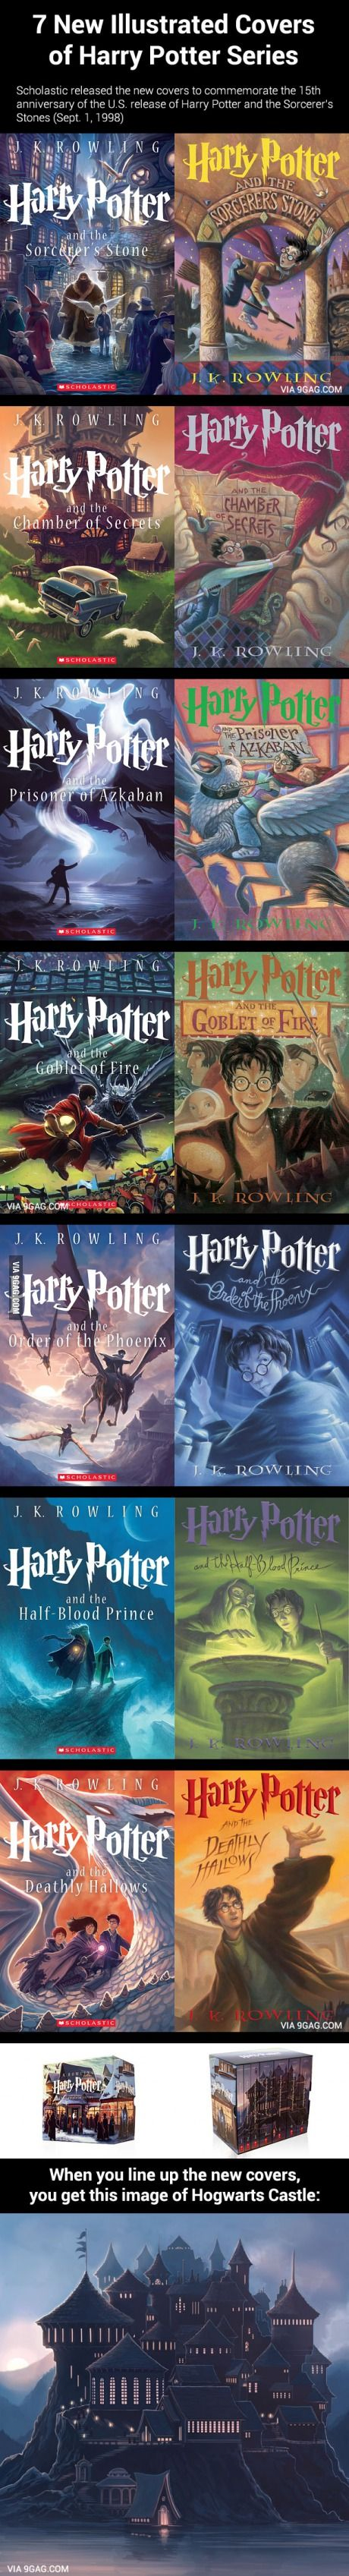 7 New Illustrated Covers of Harry Potter Series.